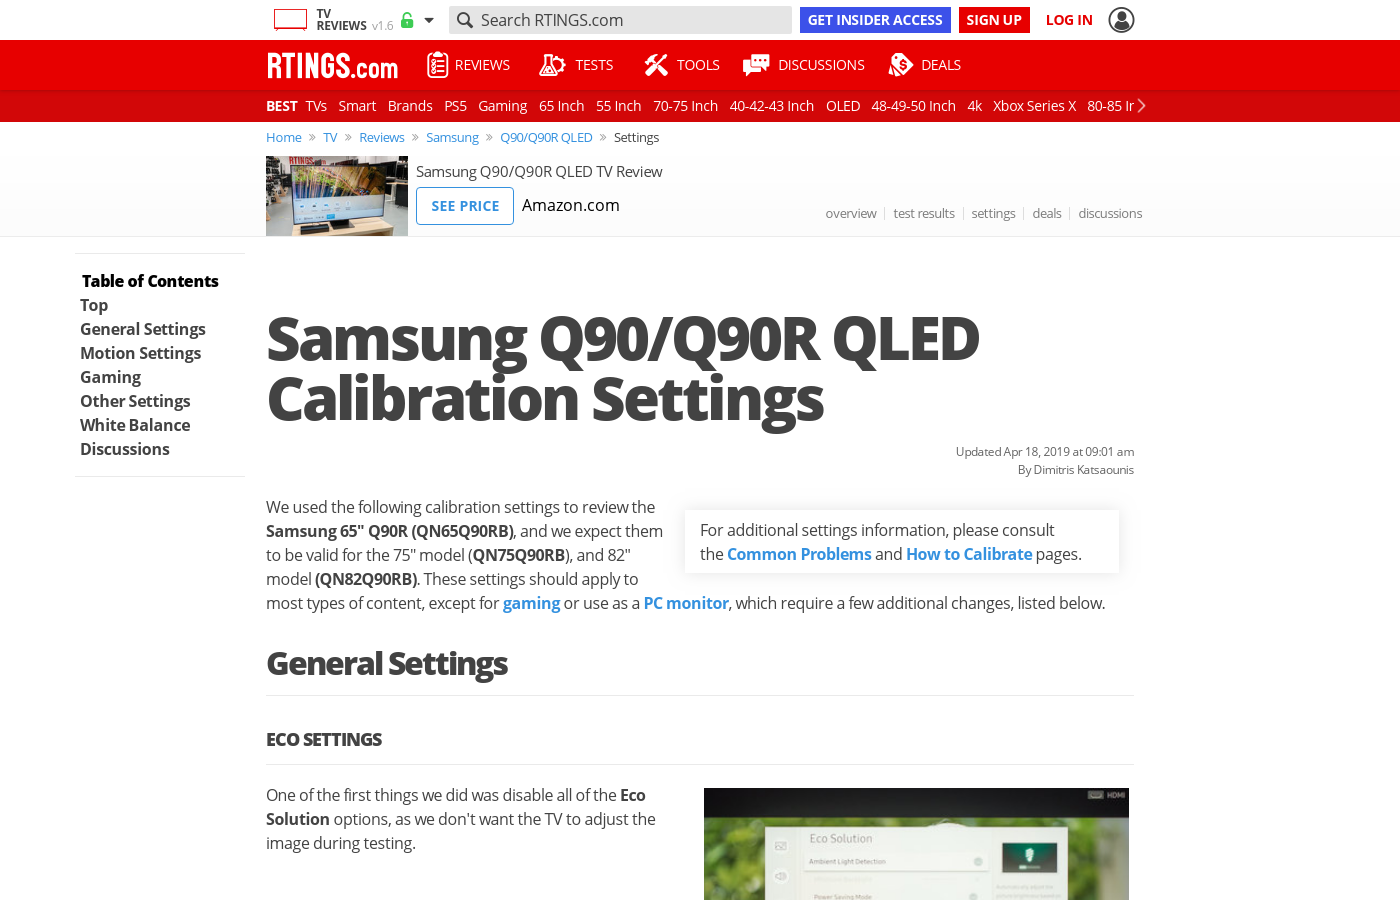 Samsung Q90/Q90R QLED Calibration Settings - RTINGS com